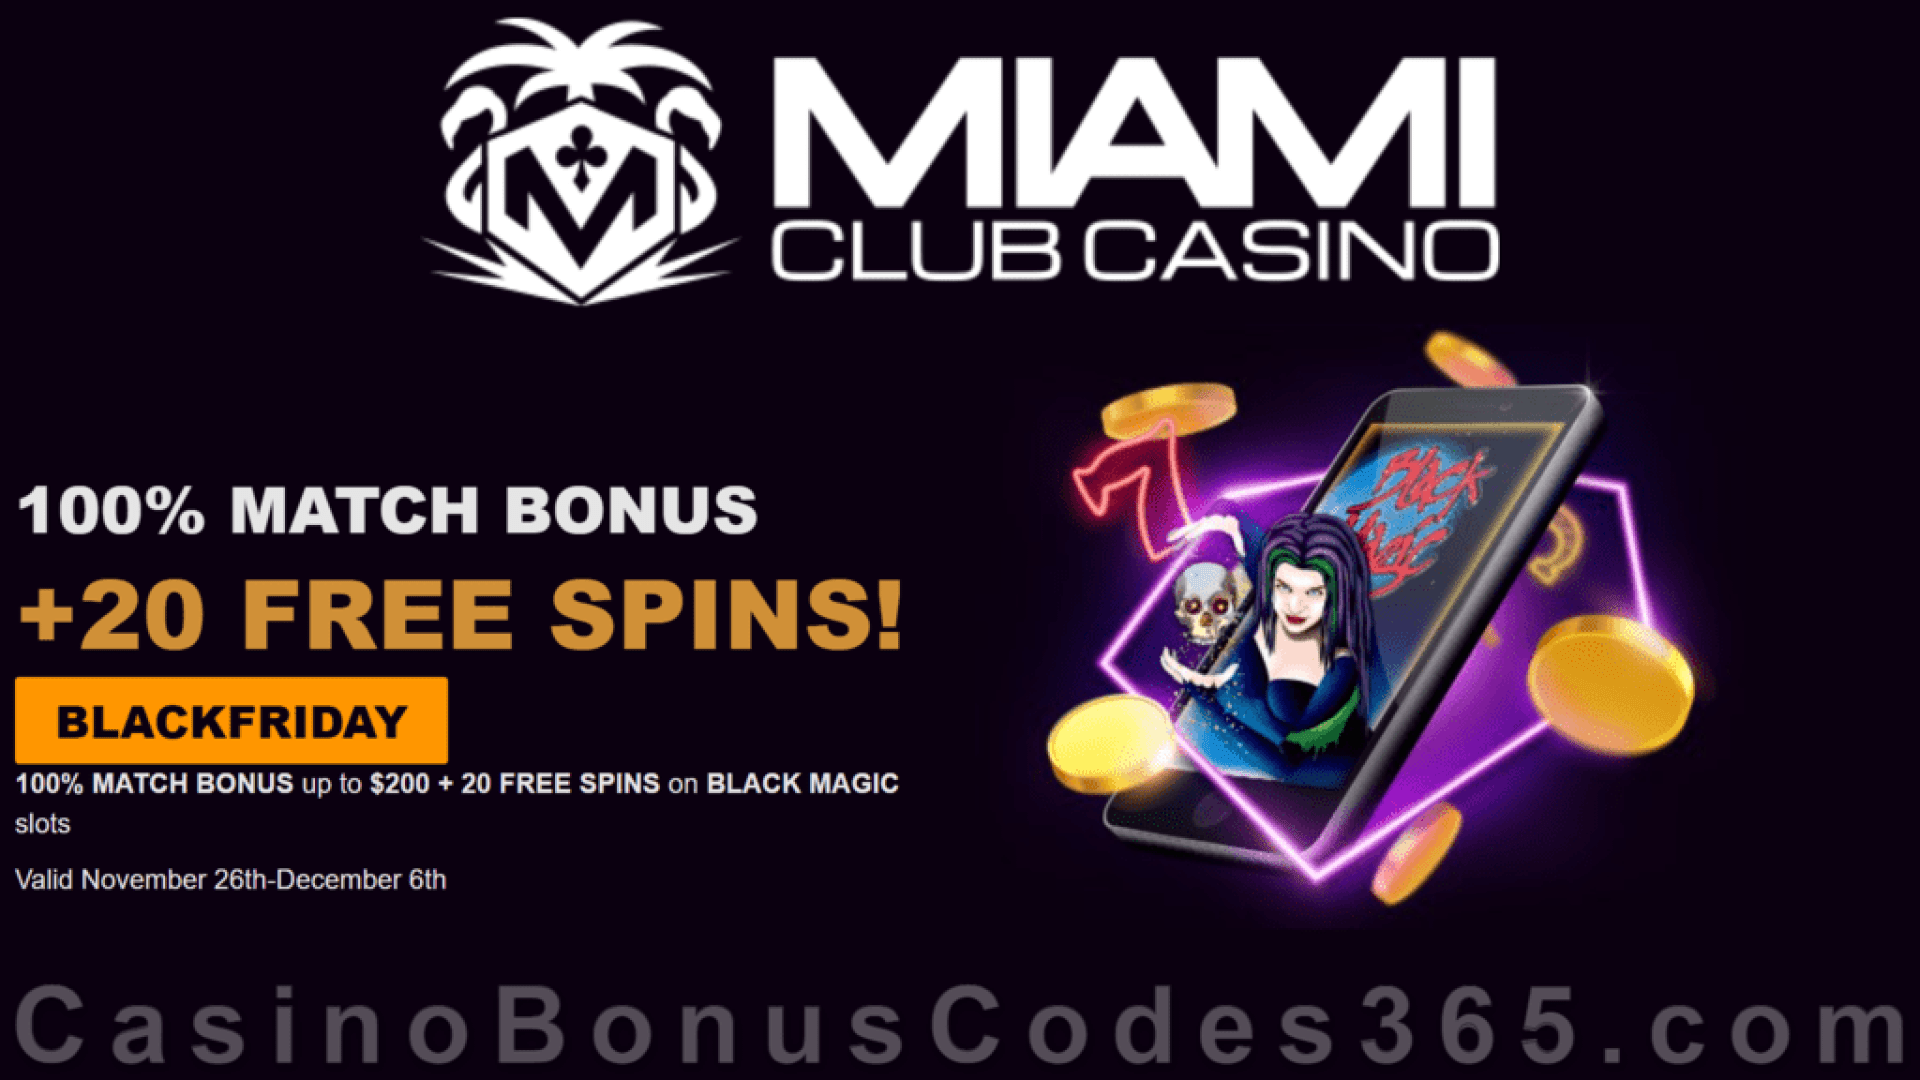 Miami Club Casino 100% Match plus 20 FREE Spins on WGS Black Magic Black Friday Mega Sale